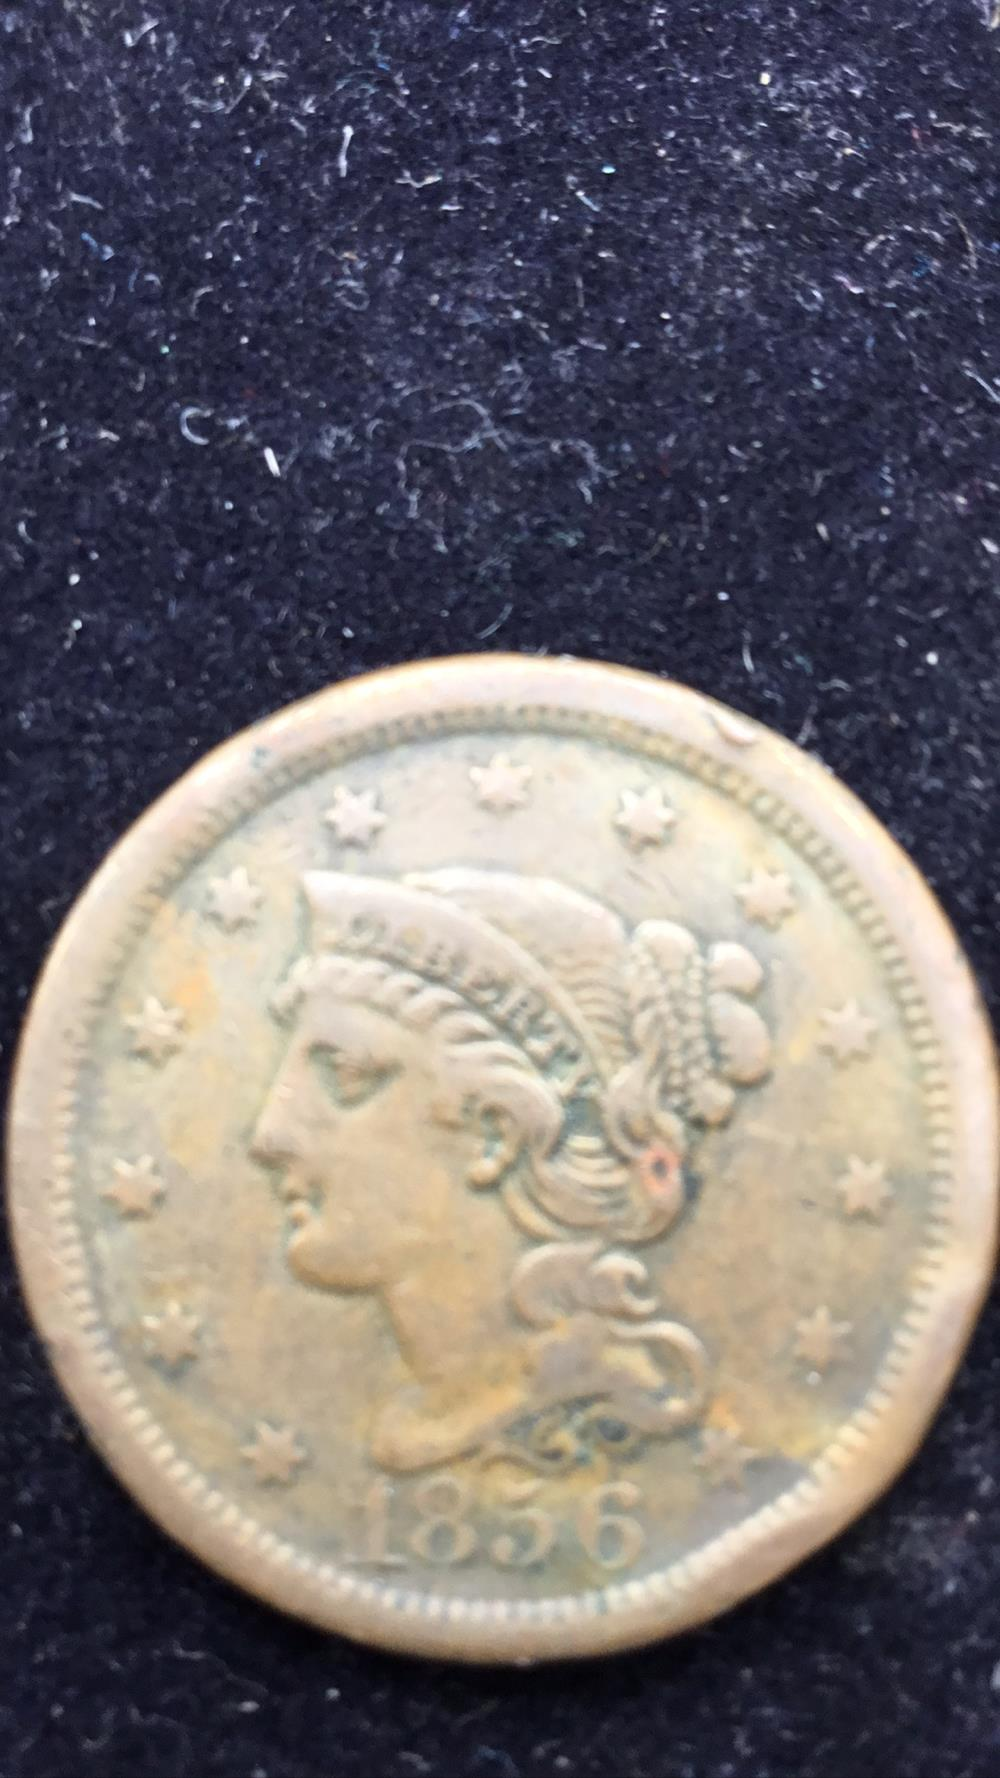 Large coronet one cent piece